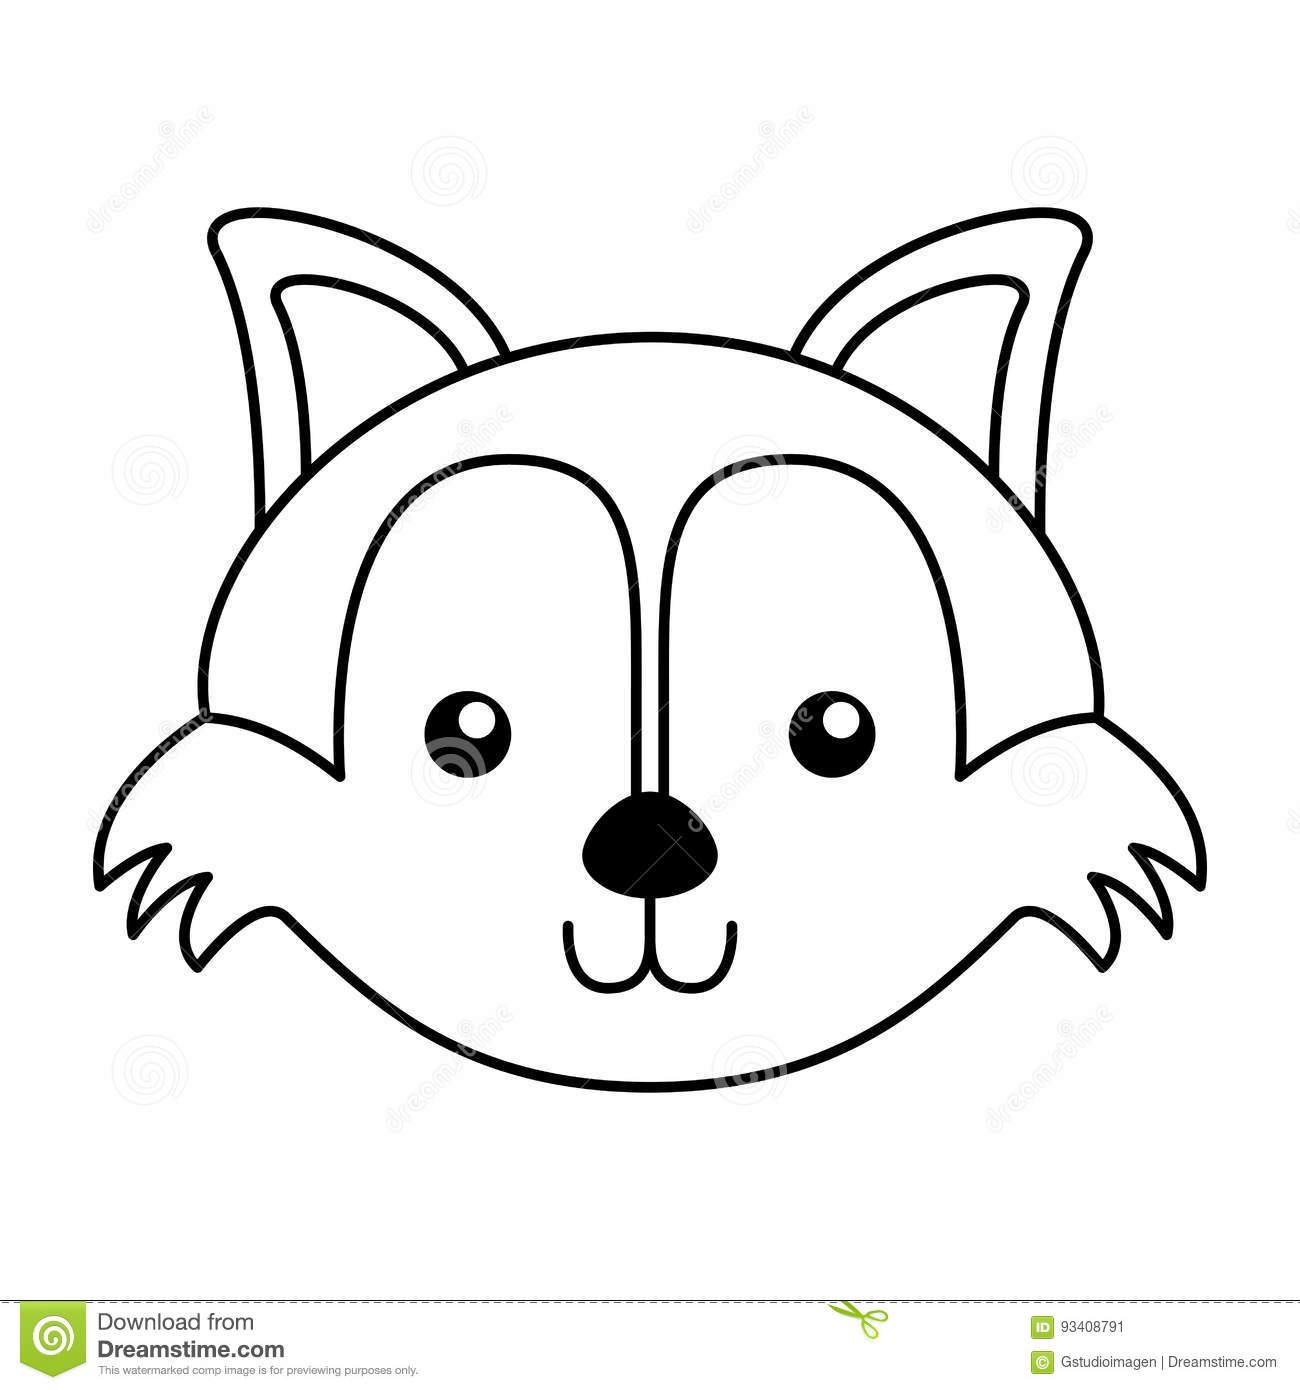 fox face coloring page download zentangle stylized desert mini fox face hand face fox page coloring